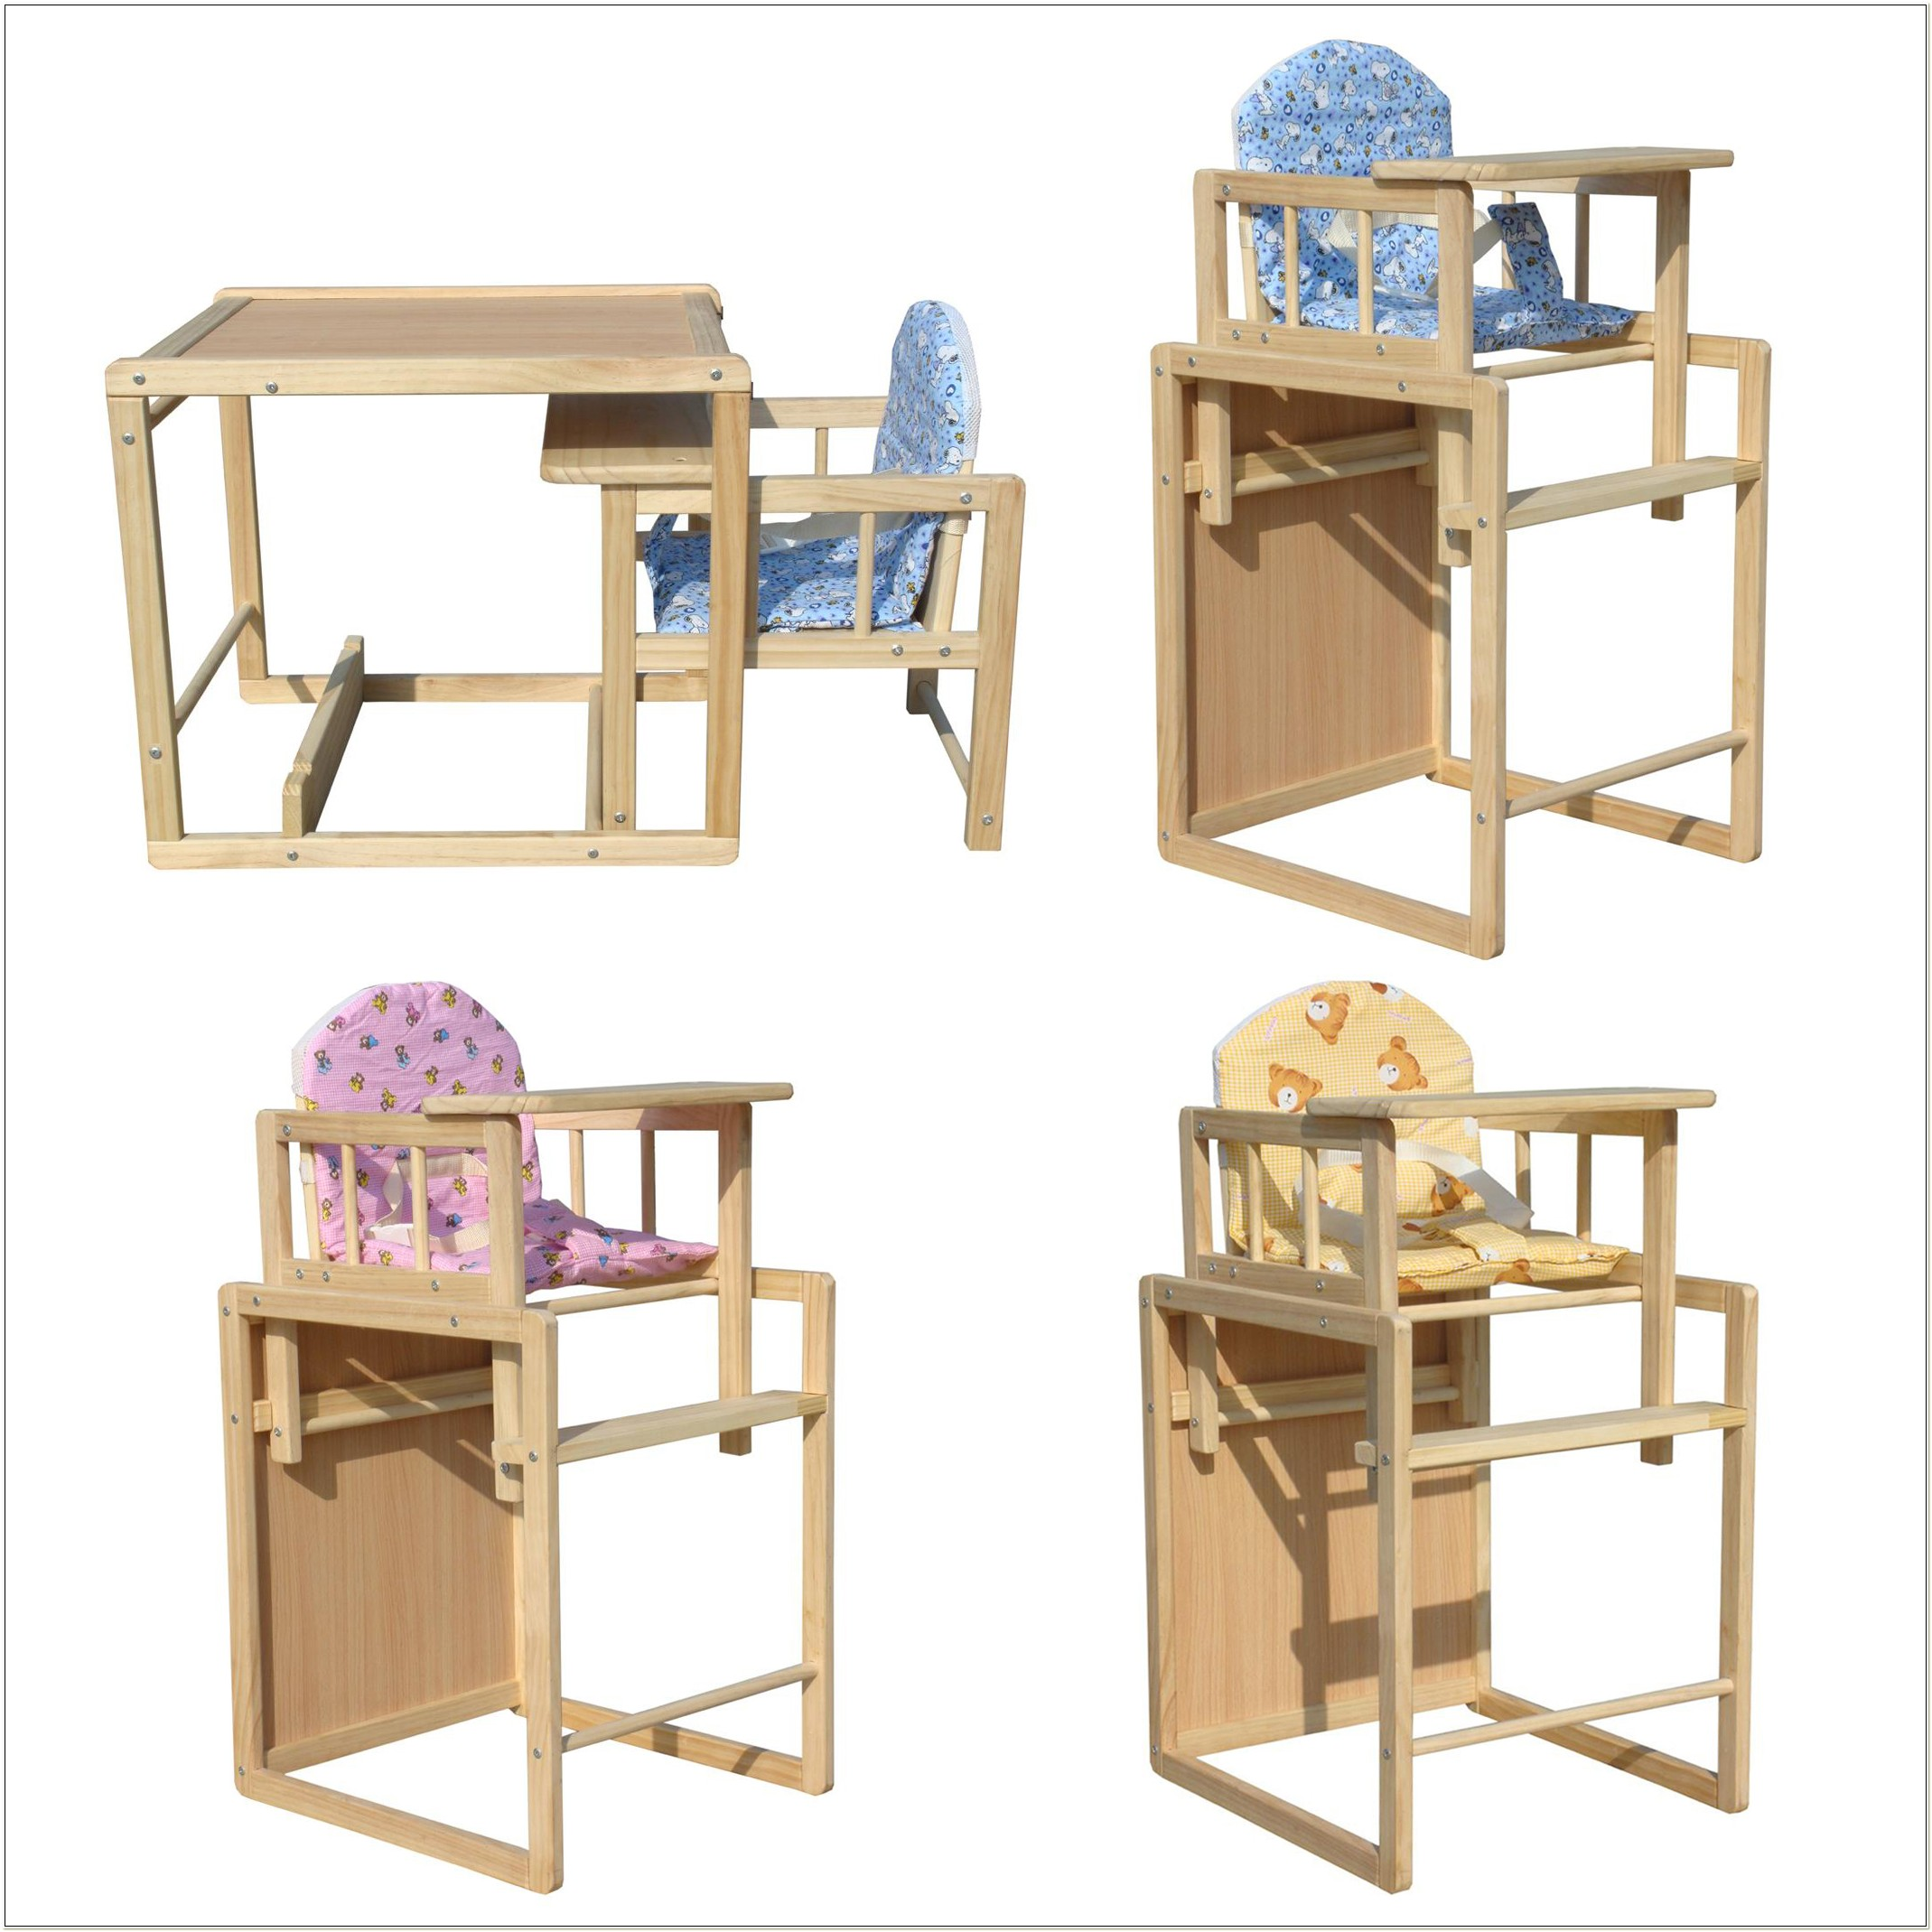 Wooden Feeding Chair For Babies